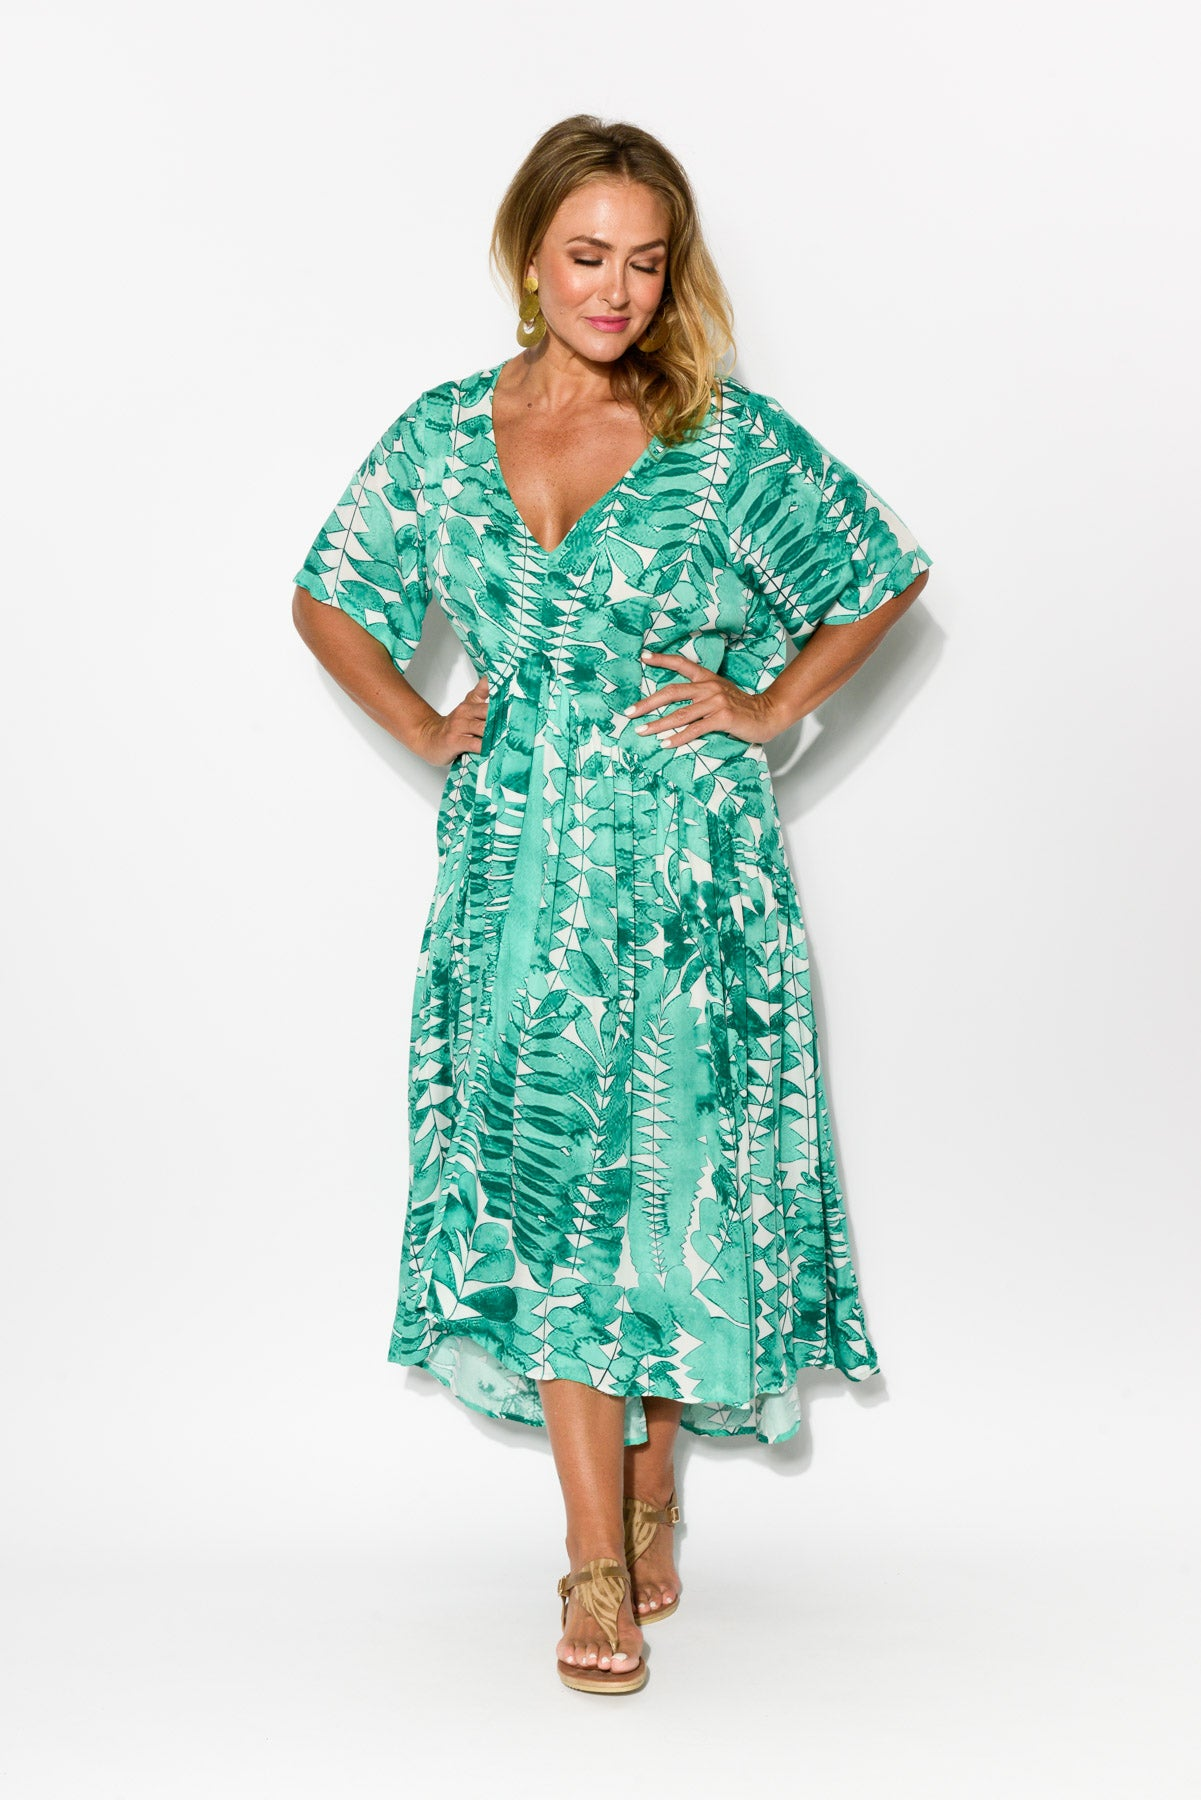 Palatial Green Peak Maxi Dress - Blue Bungalow